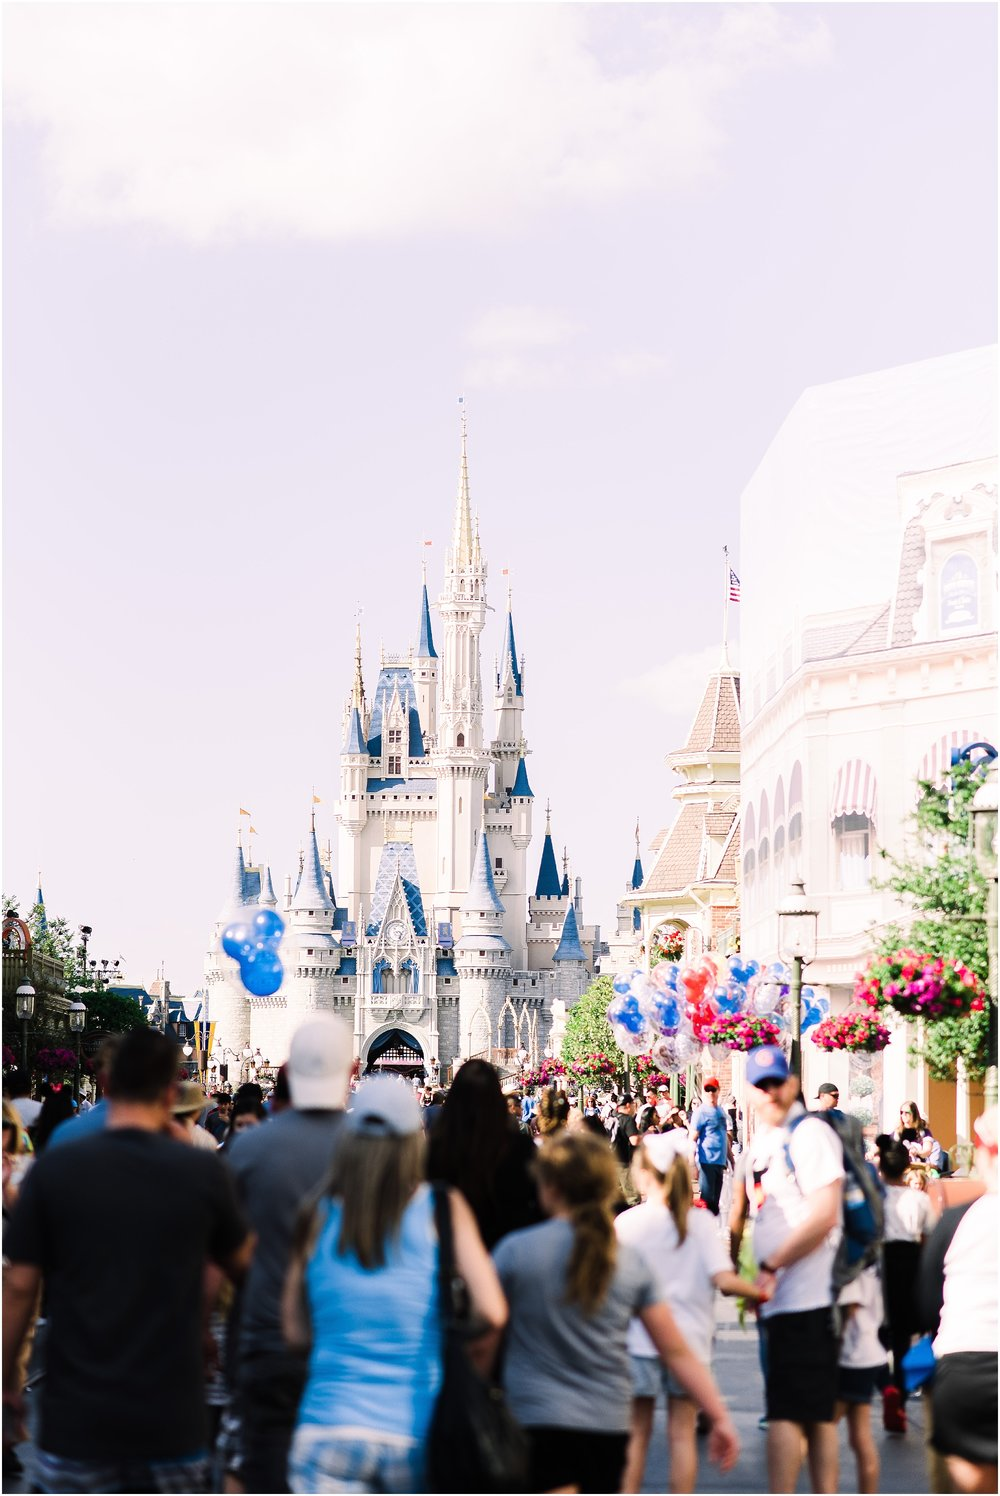 Ventura-California-and-Tallahassee-Florida-Wedding-Photographer-Mateo-turns-five-at-Disney-World-in-Orlando-Florida_0003.jpg